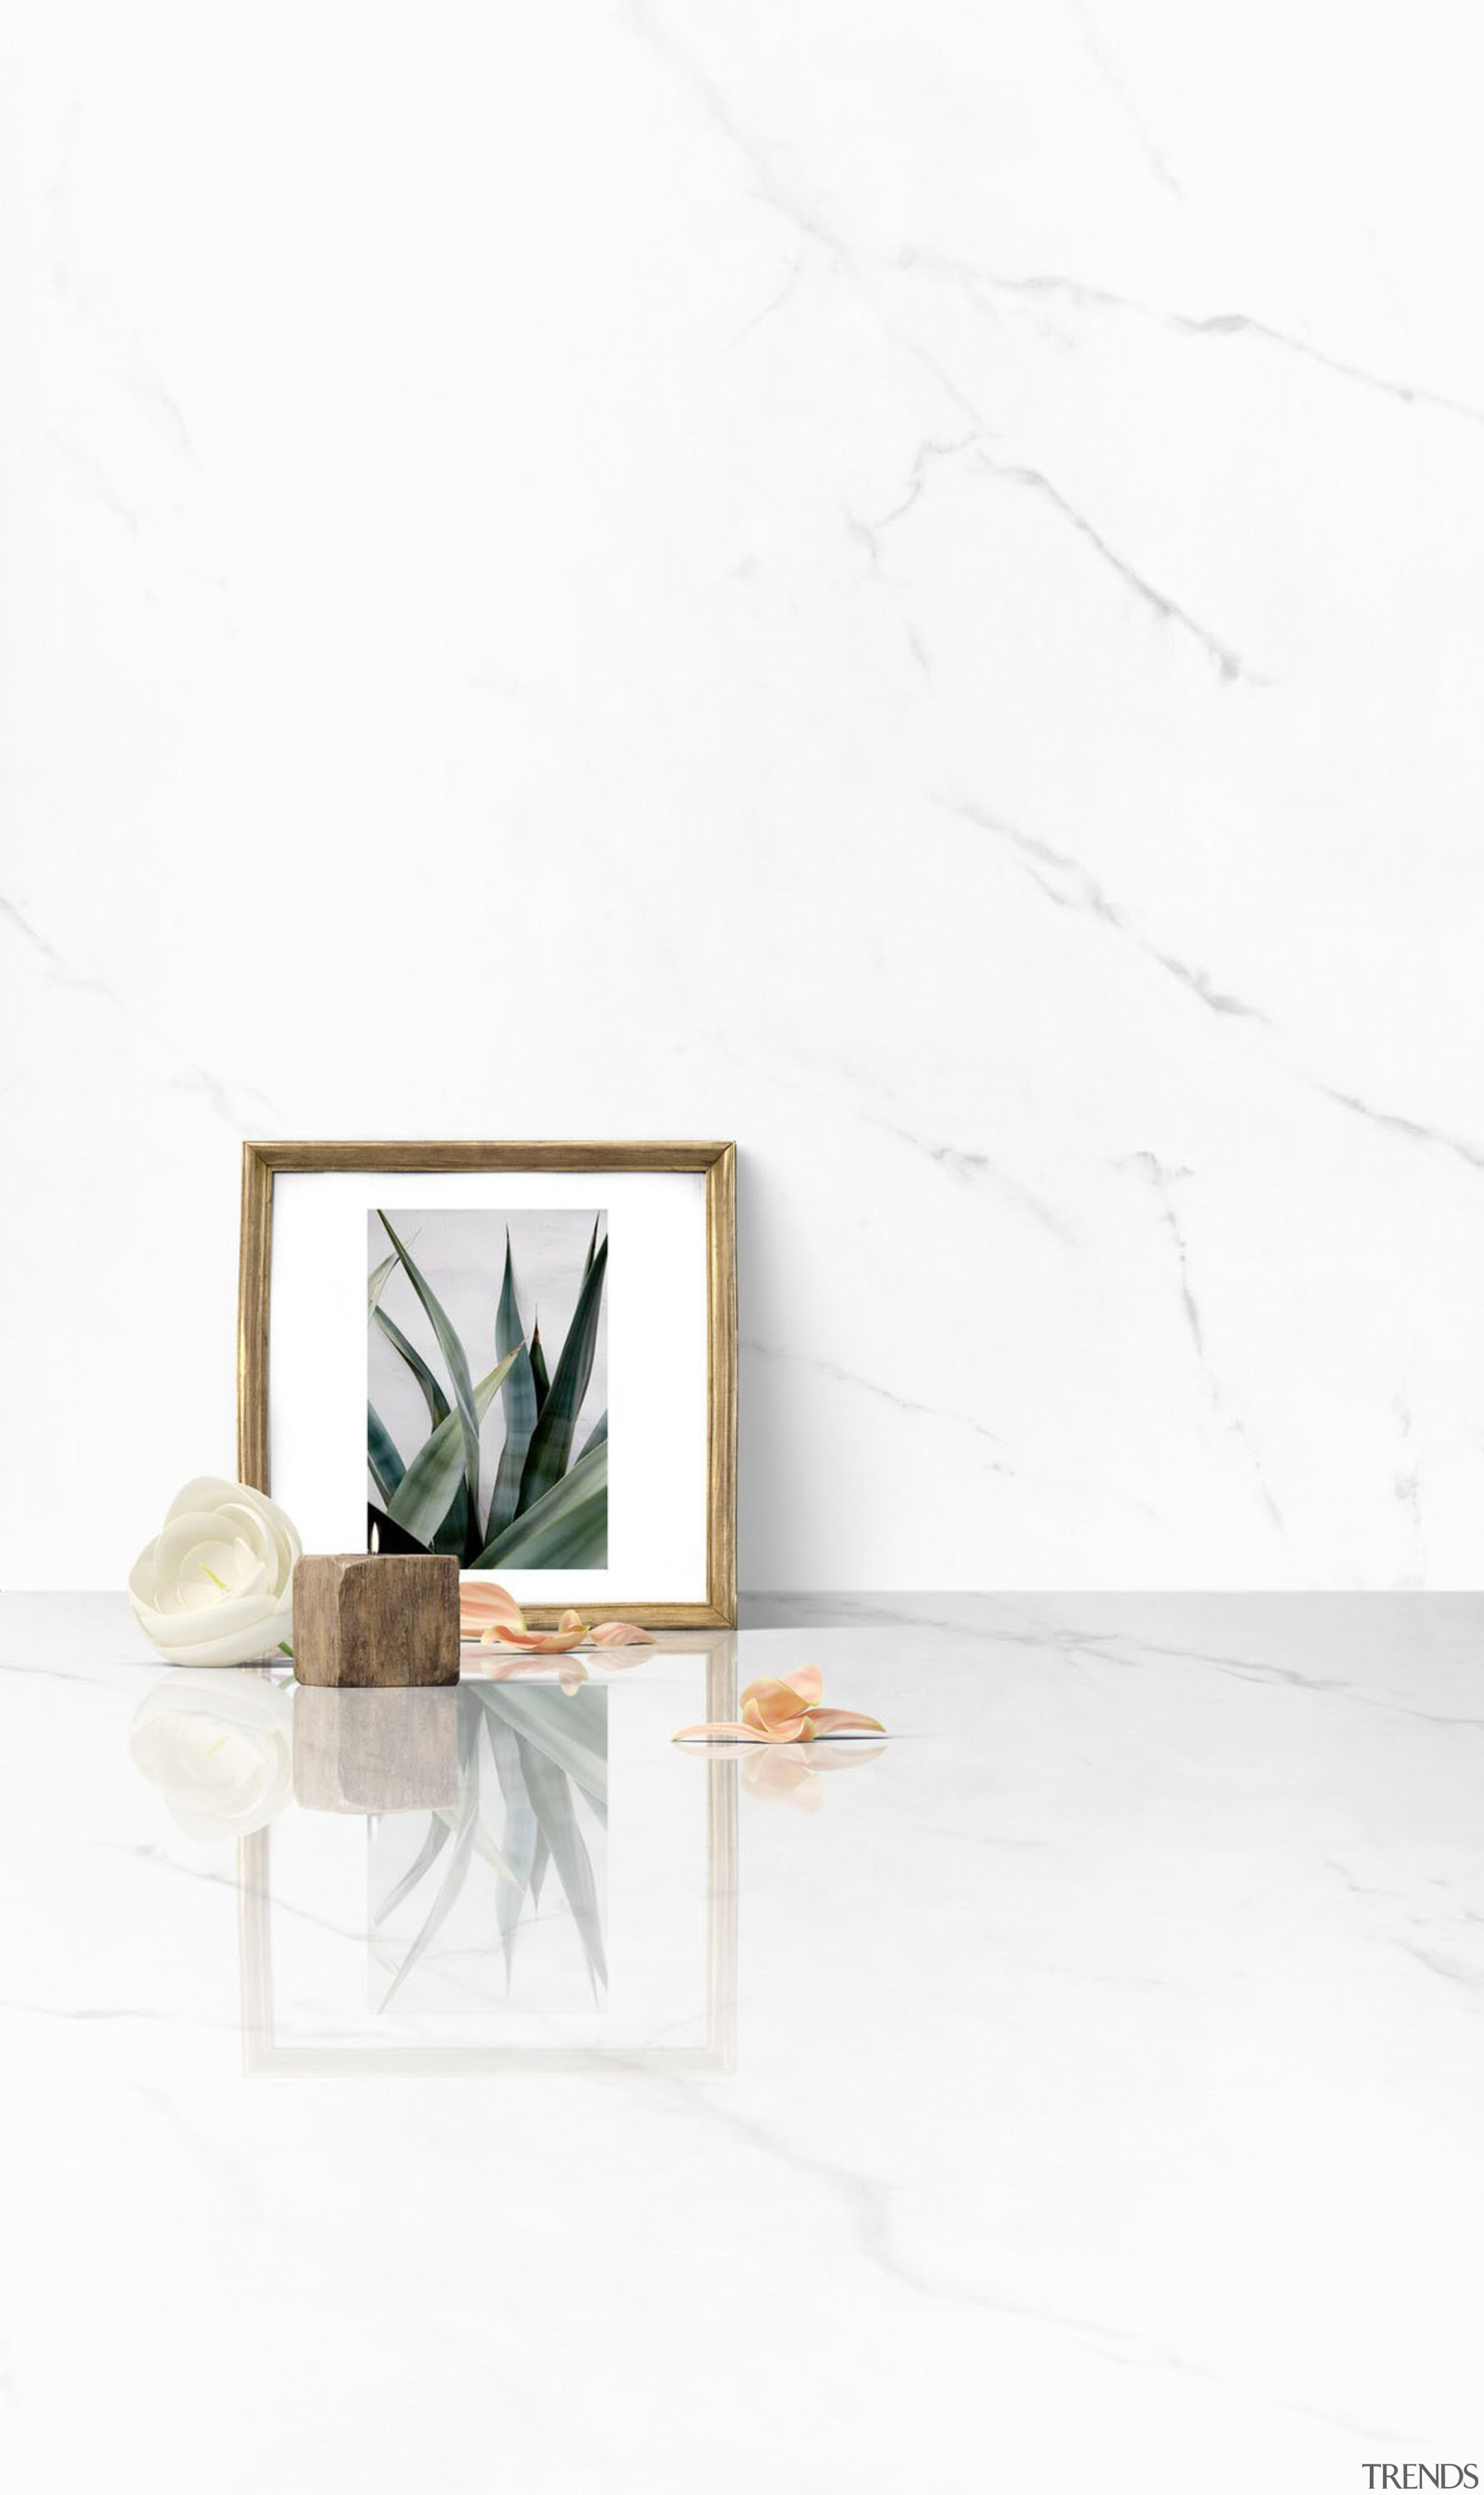 Compo Tundra Dekton XGloss Natural (LR) - Compo product design, still life photography, table, white